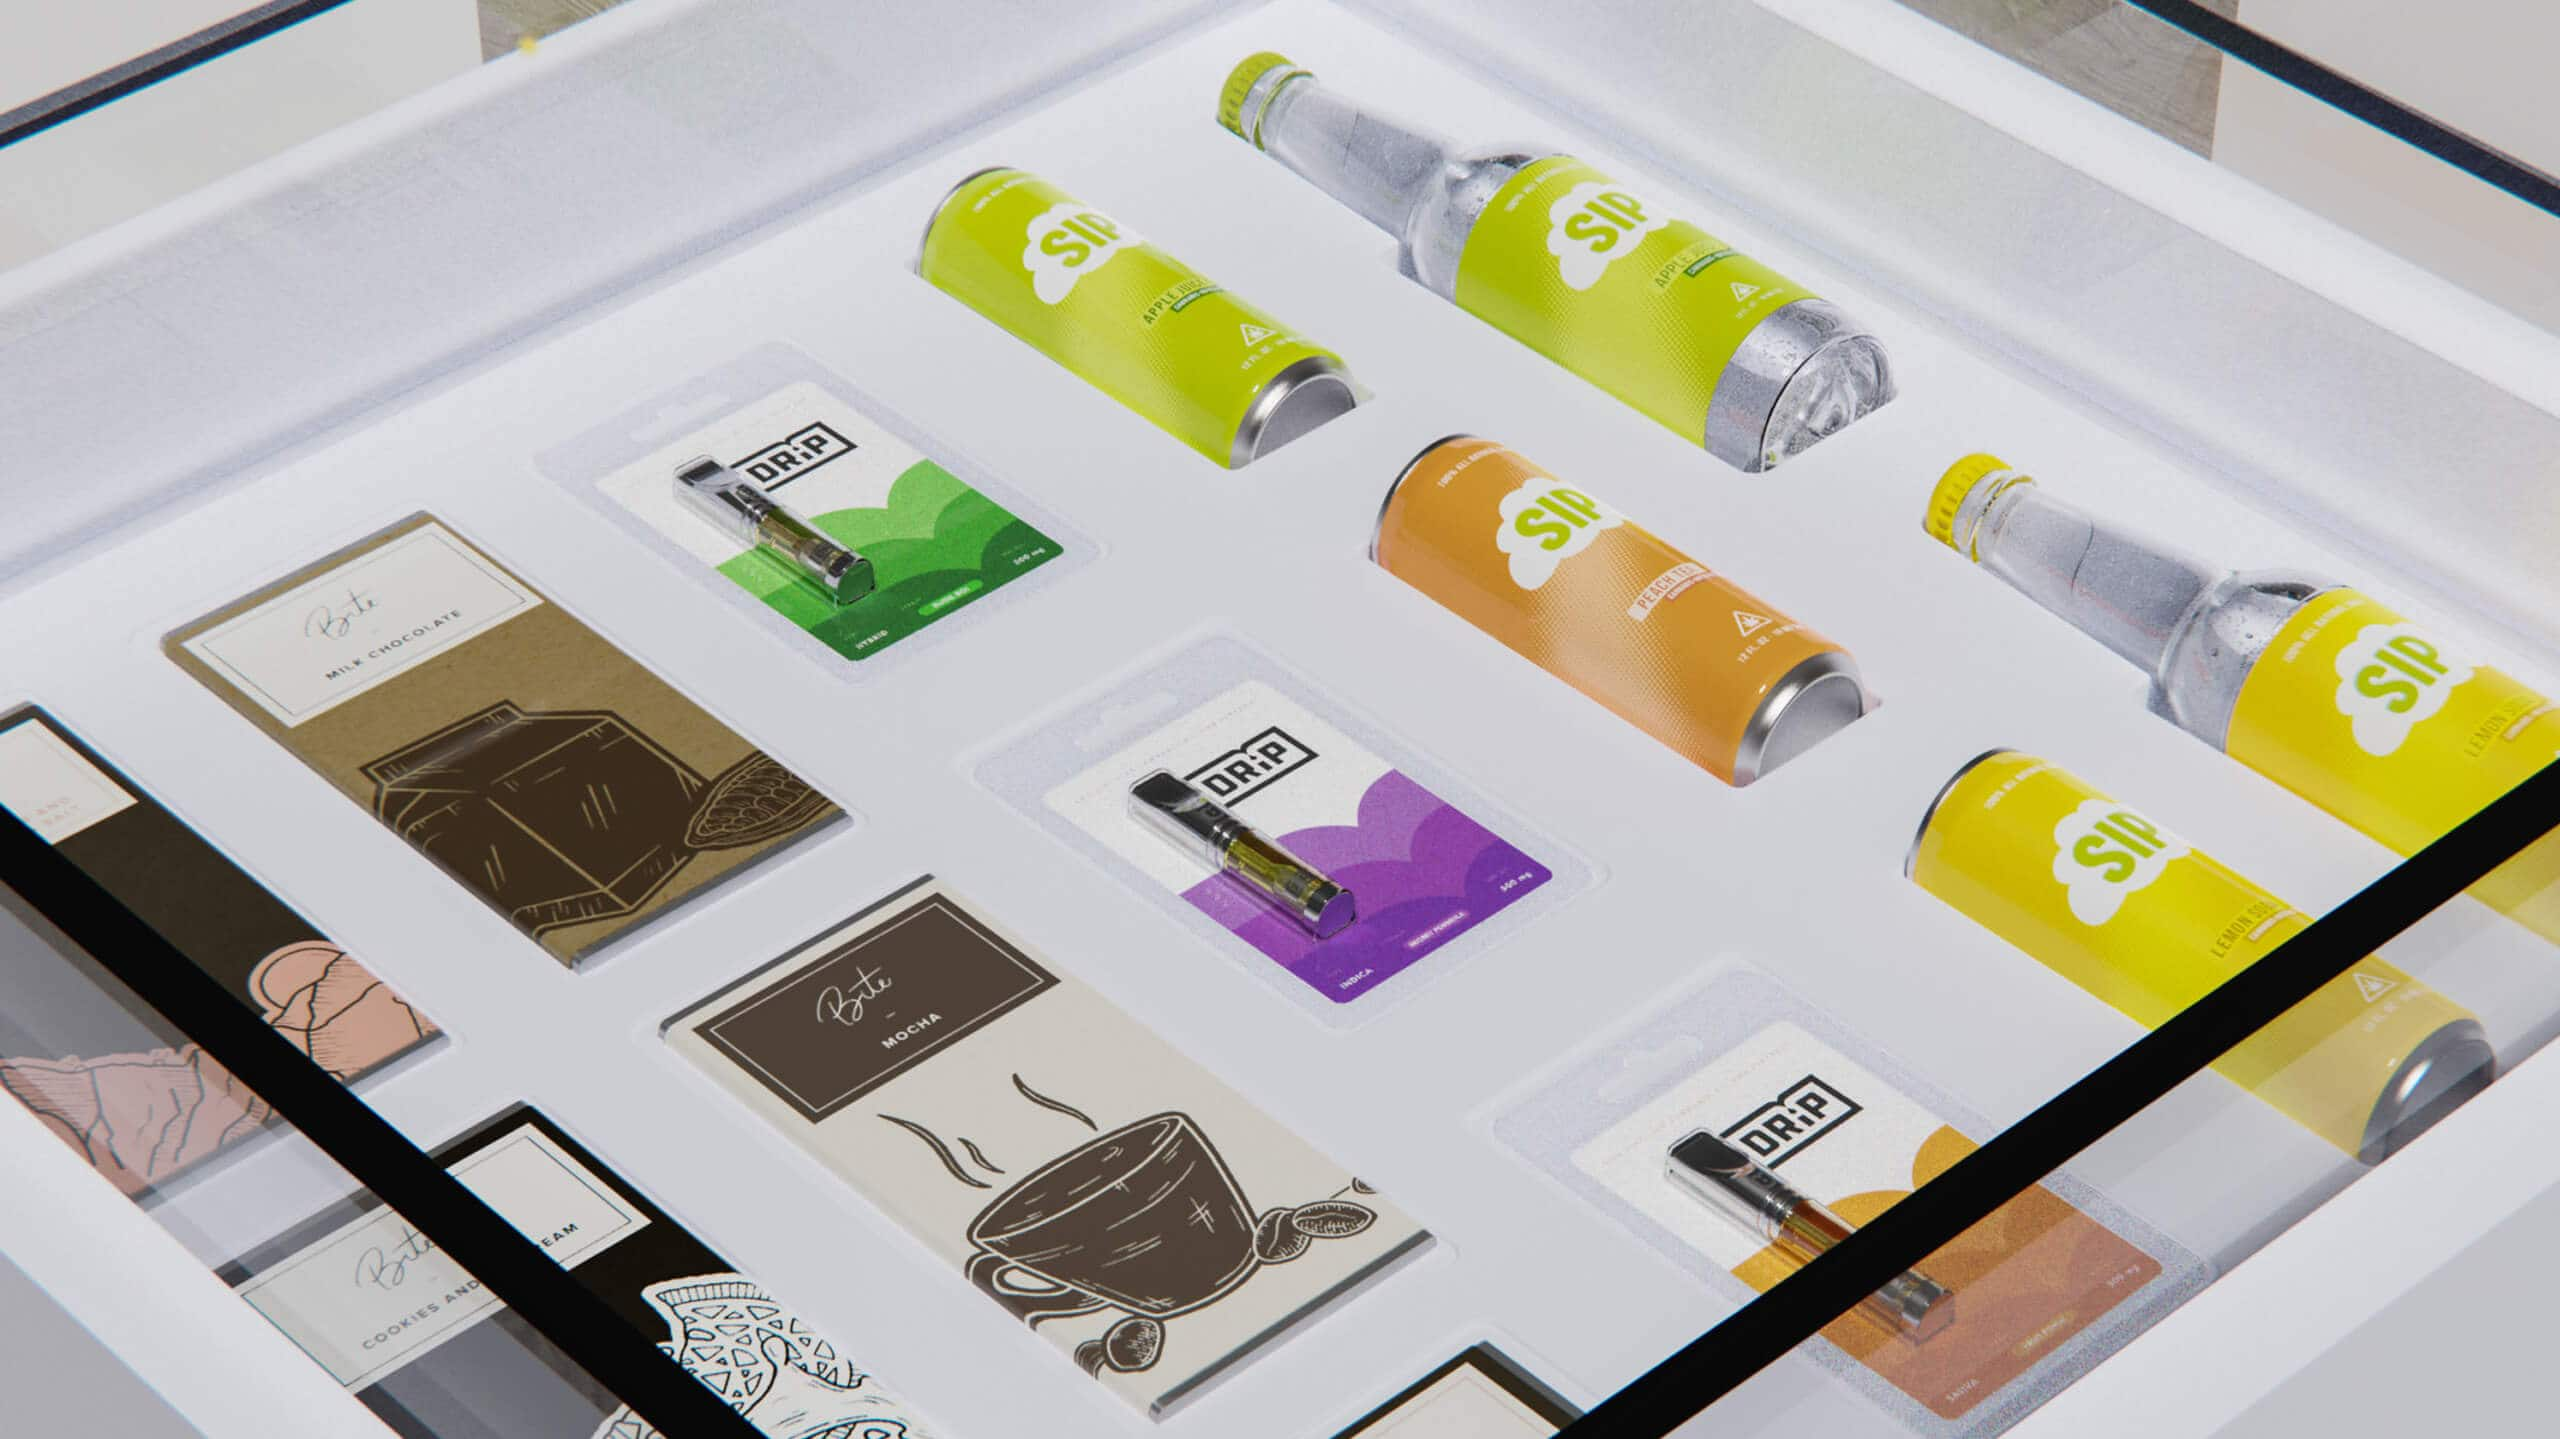 commcan bite sip drip cannabis packaging bottles cans cartridges in glass display